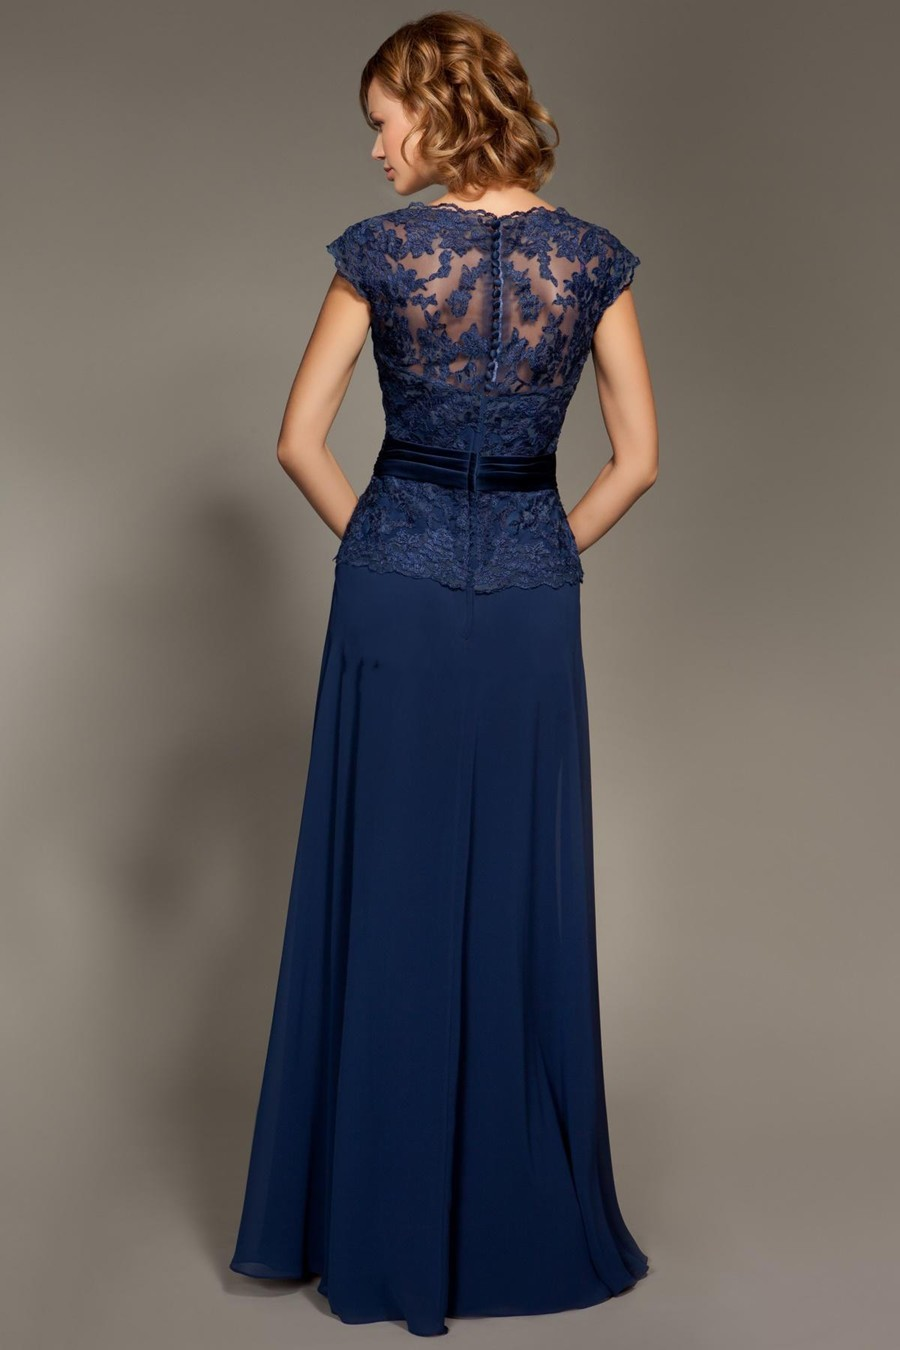 Cheap Dark Navy Blue Lace Cap Sleeve Chiffon Floor-Length Mother Of The Bride Dresses Party Dresses Prom Dresses (2)